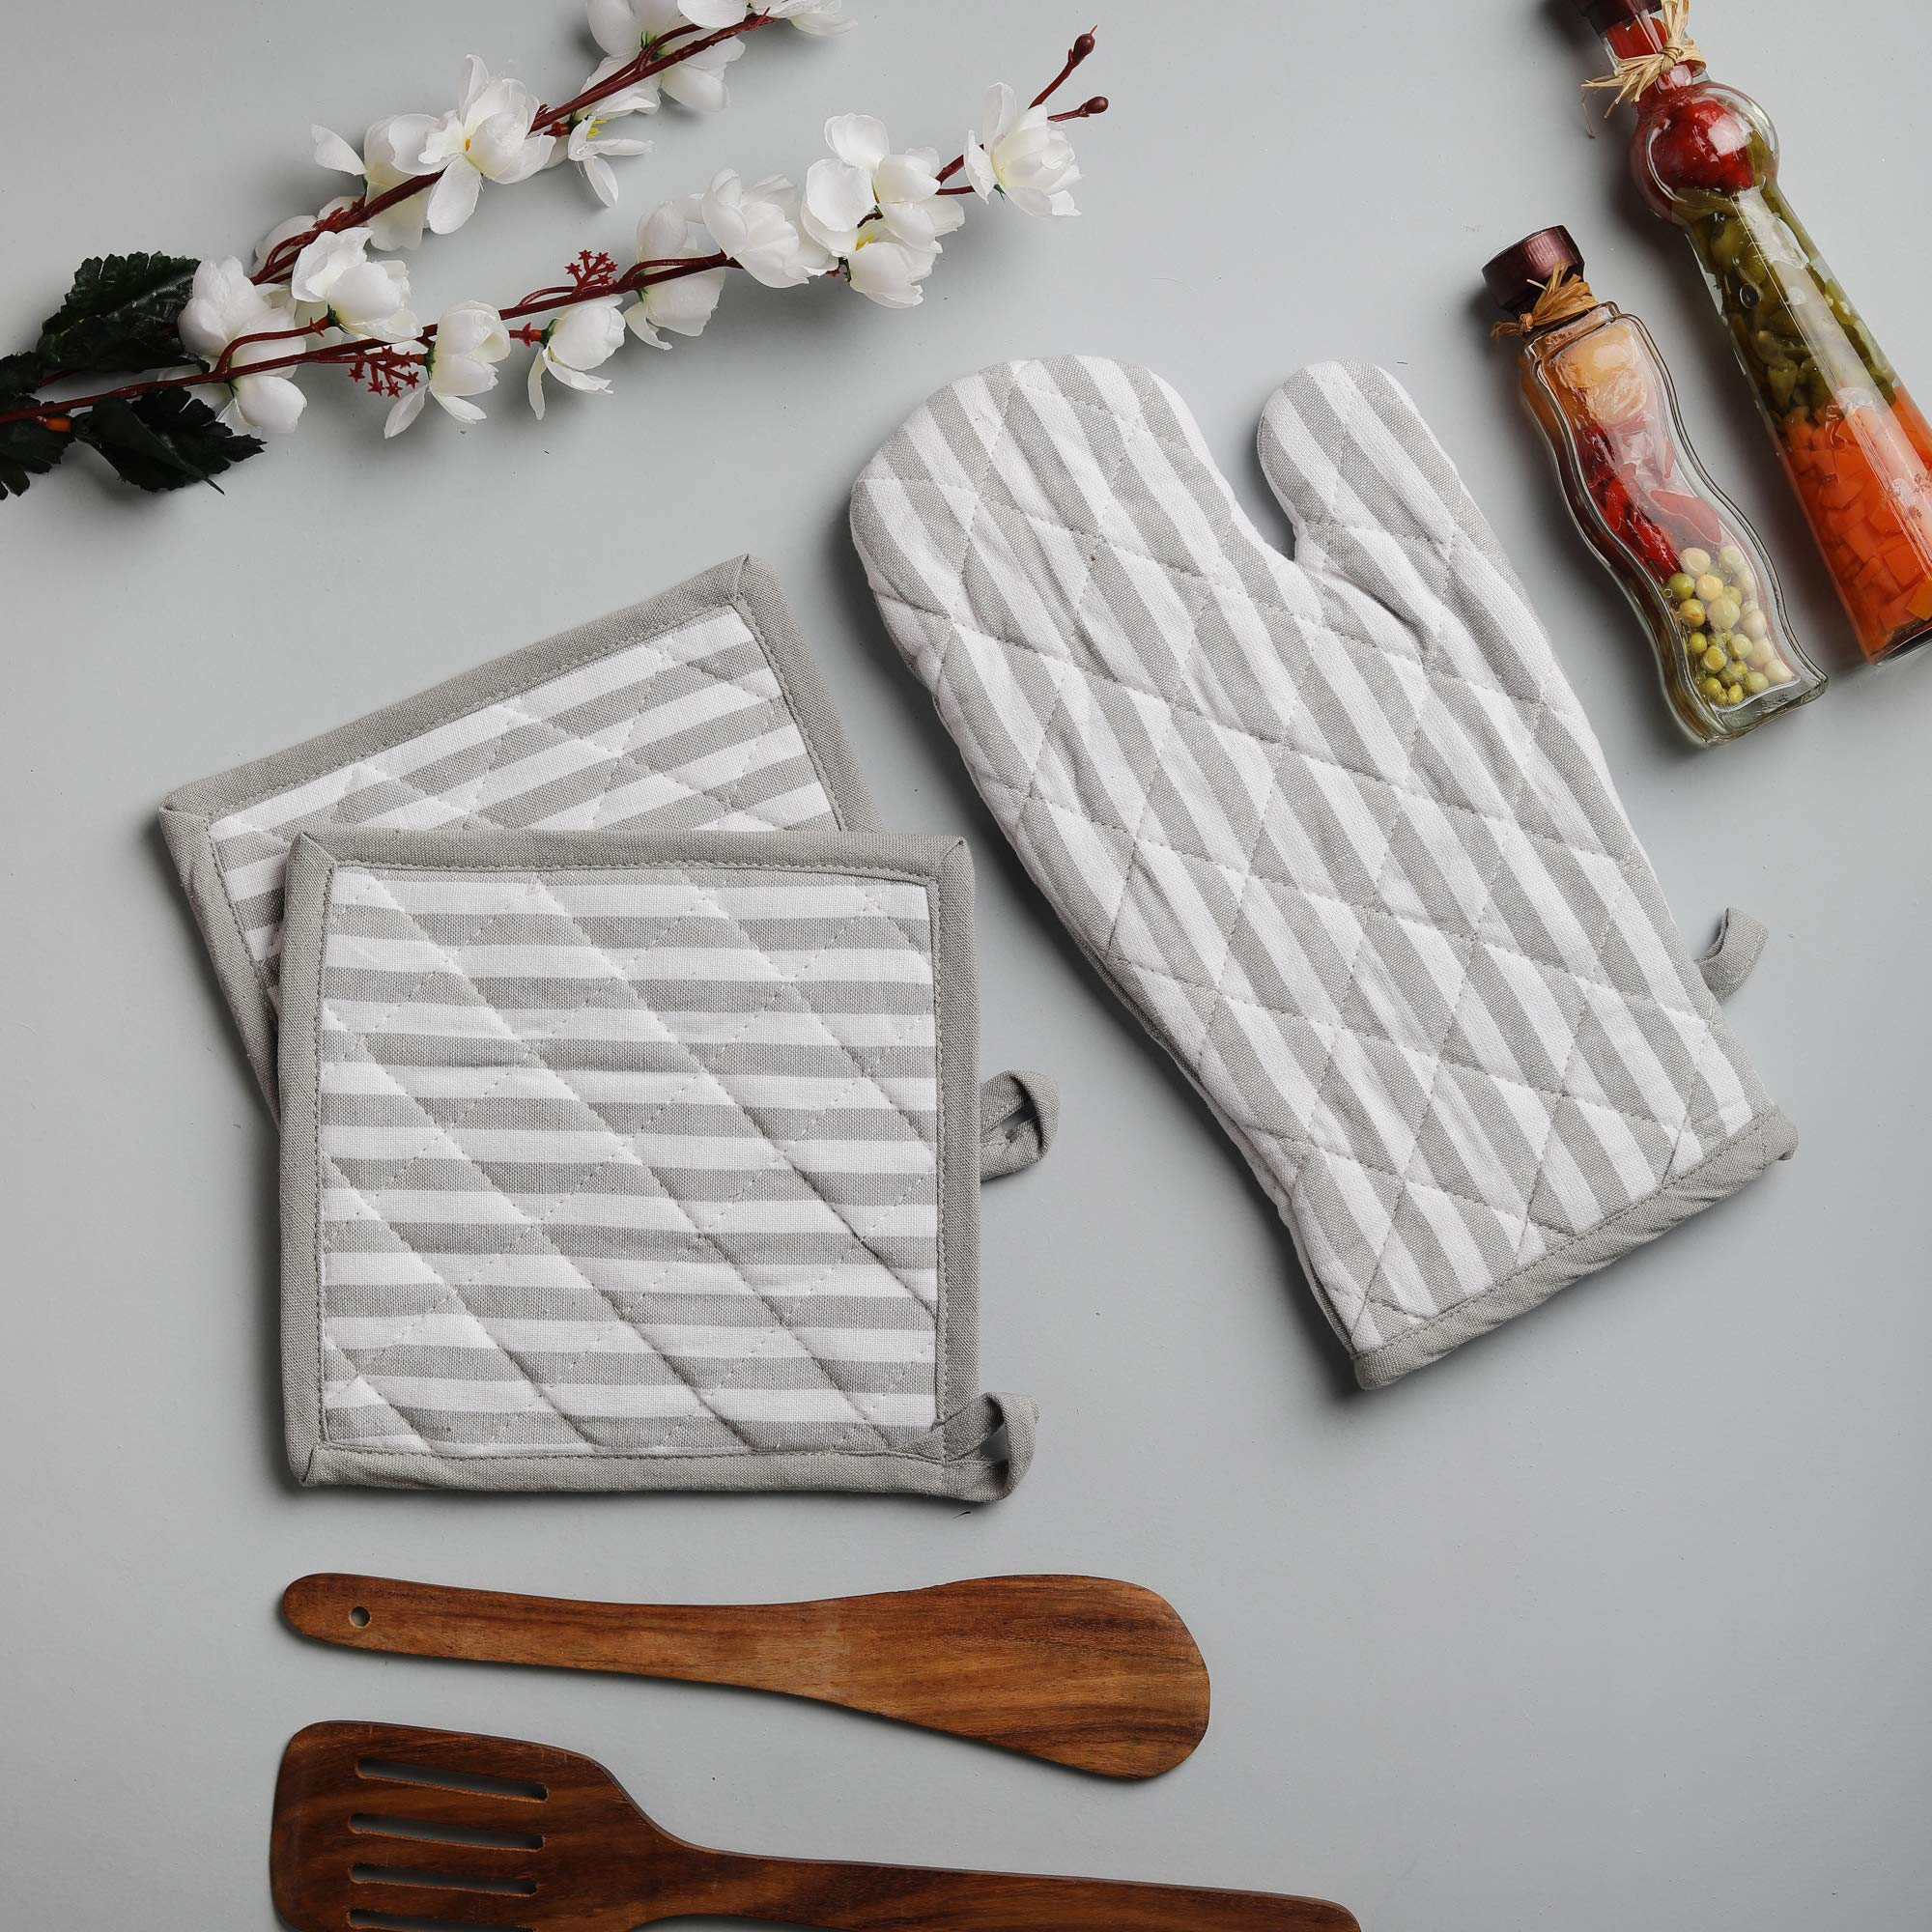 Cotton Oven Mitten and Pot Holders, 3 Piece Set, Grey & White Stripe For Everyday Use